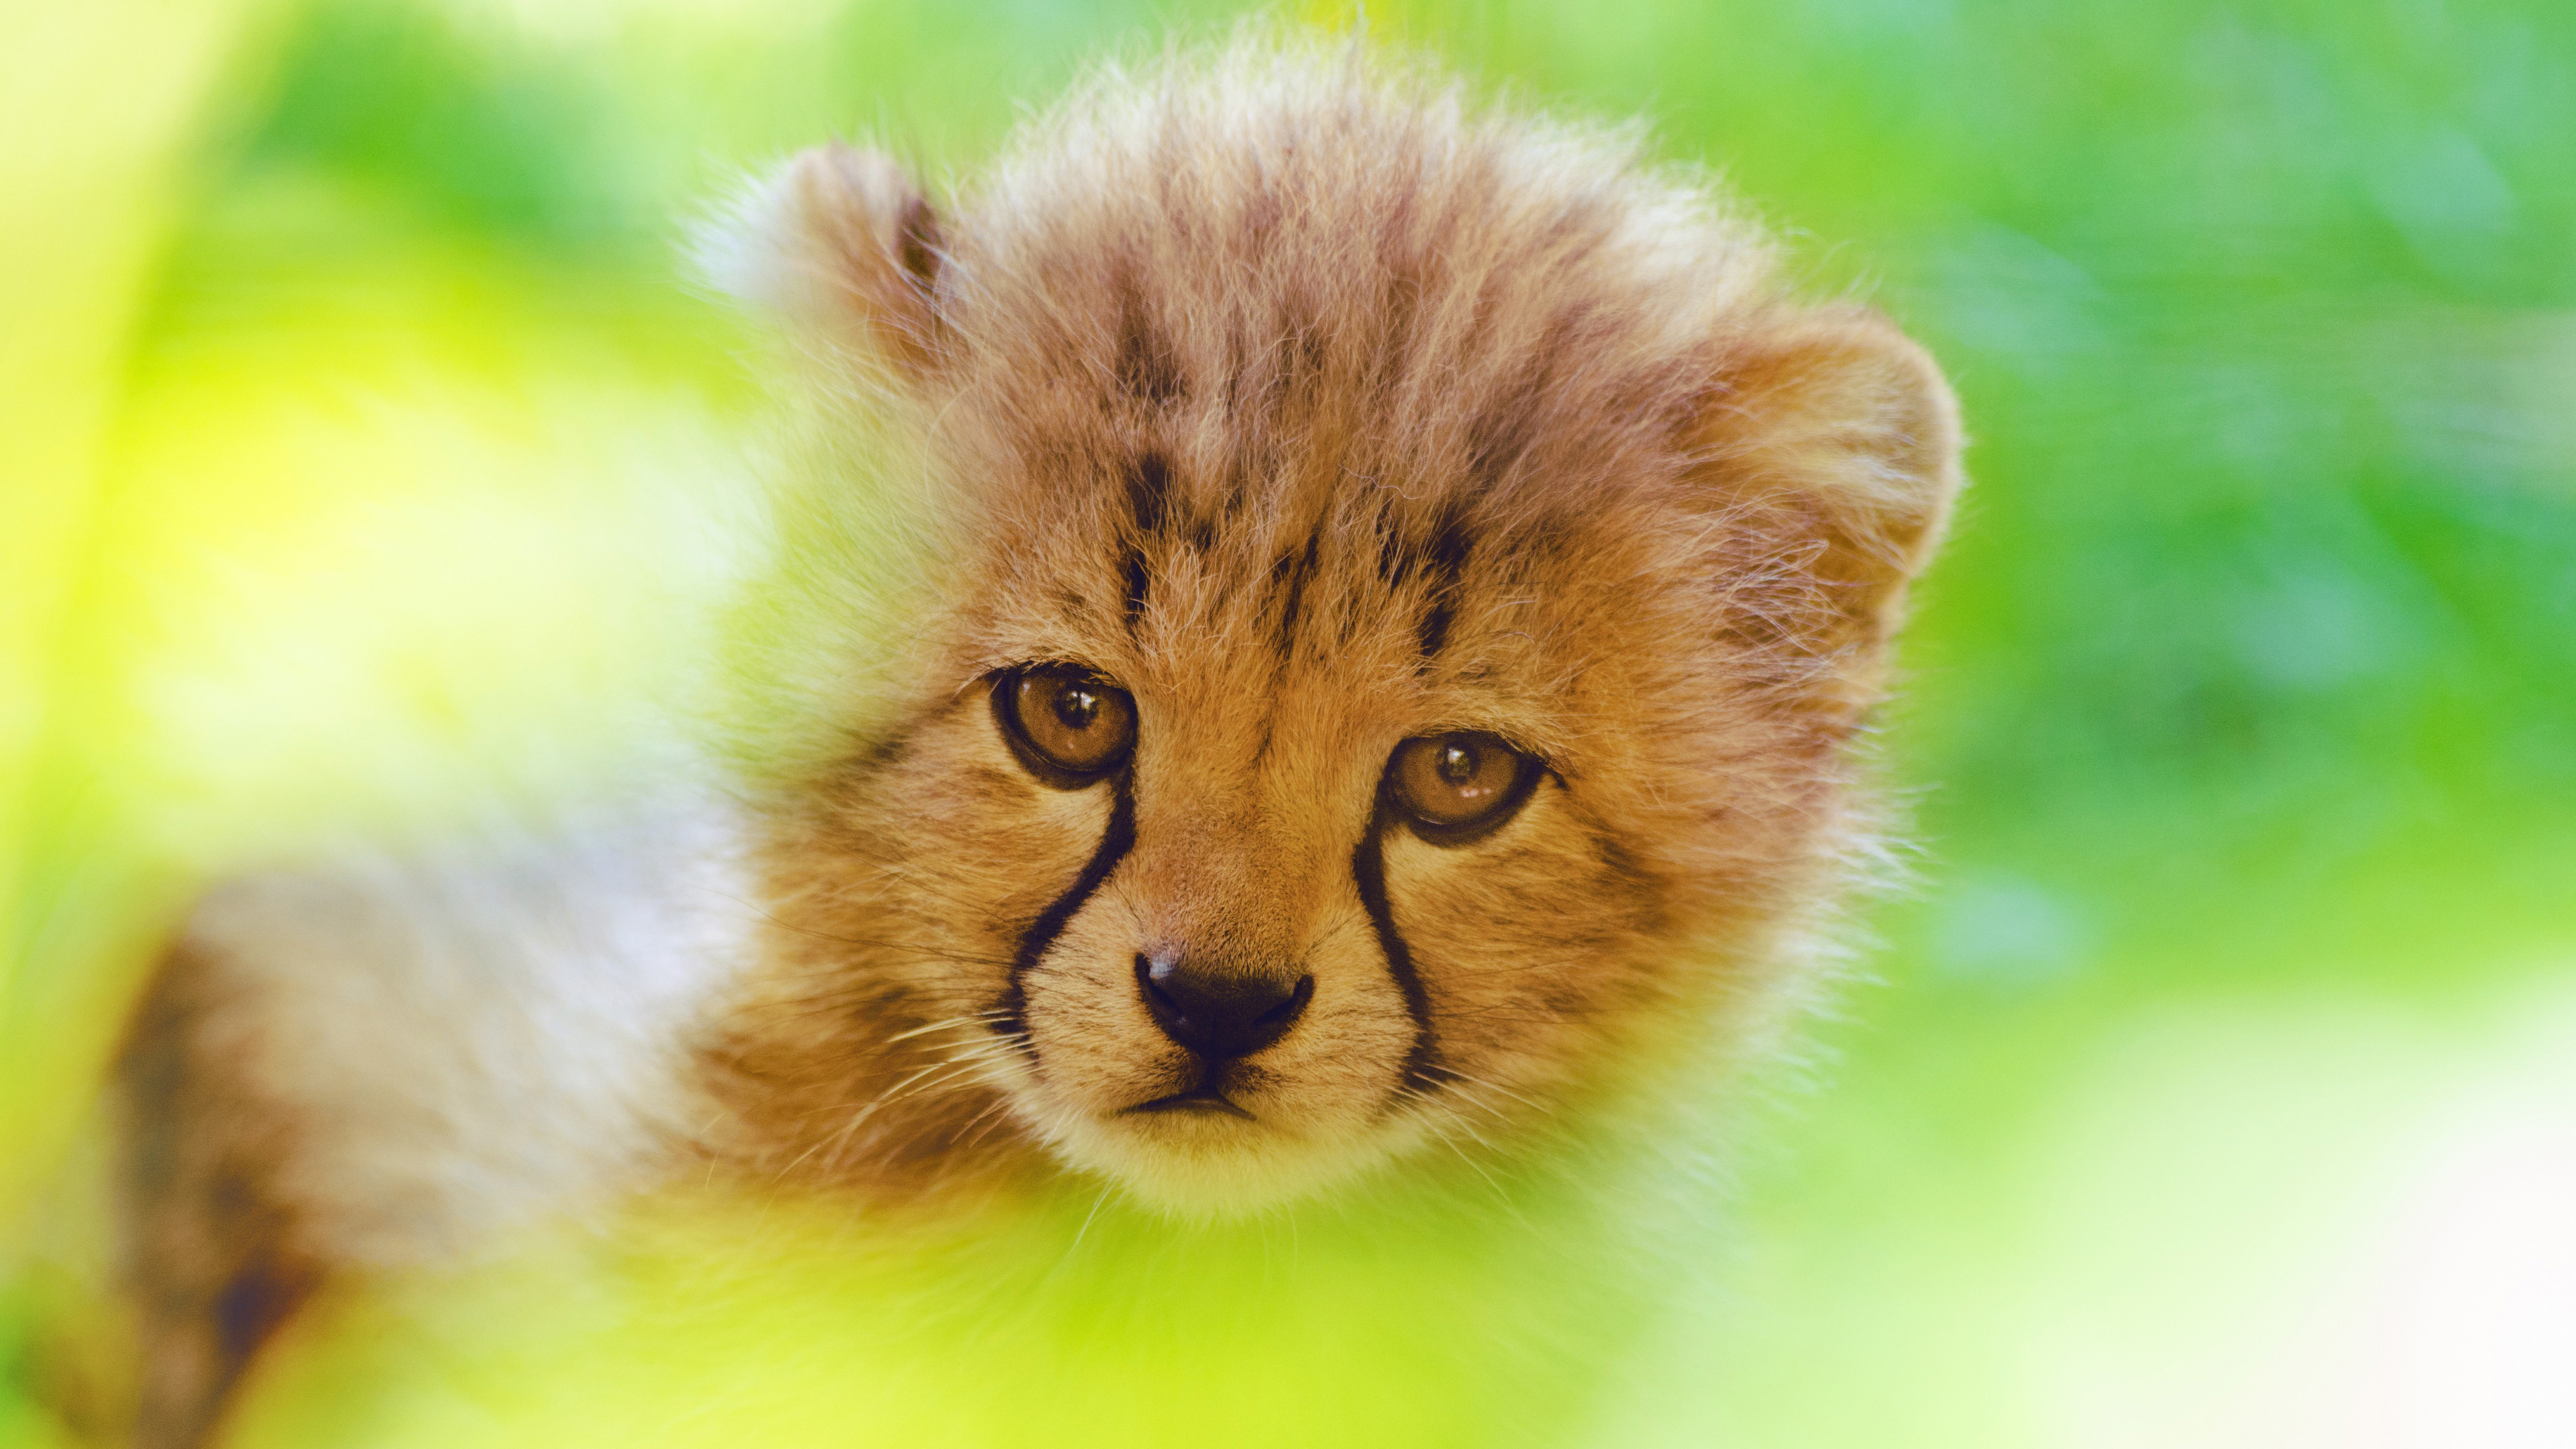 cheetah cute cub 4k 1542238785 - Cheetah Cute Cub 4k - hd-wallpapers, cub wallpapers, cheetah wallpapers, animals wallpapers, 4k-wallpapers